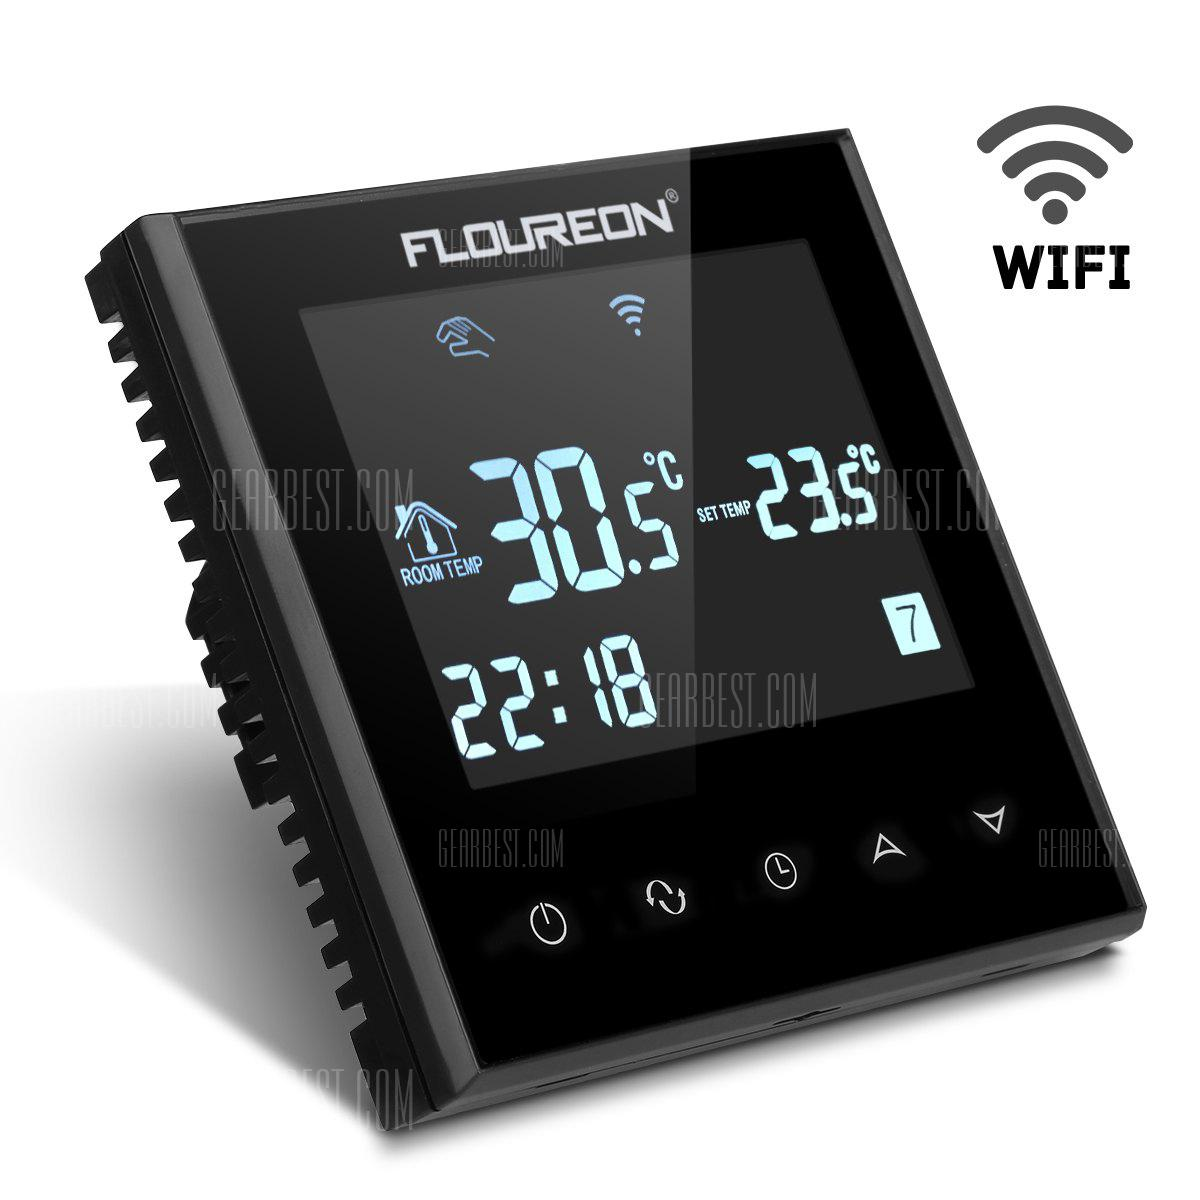 Floureon Smart Wi-Fi Programmable Digital Touch Screen Thermostat HY03WE-4-Wifi